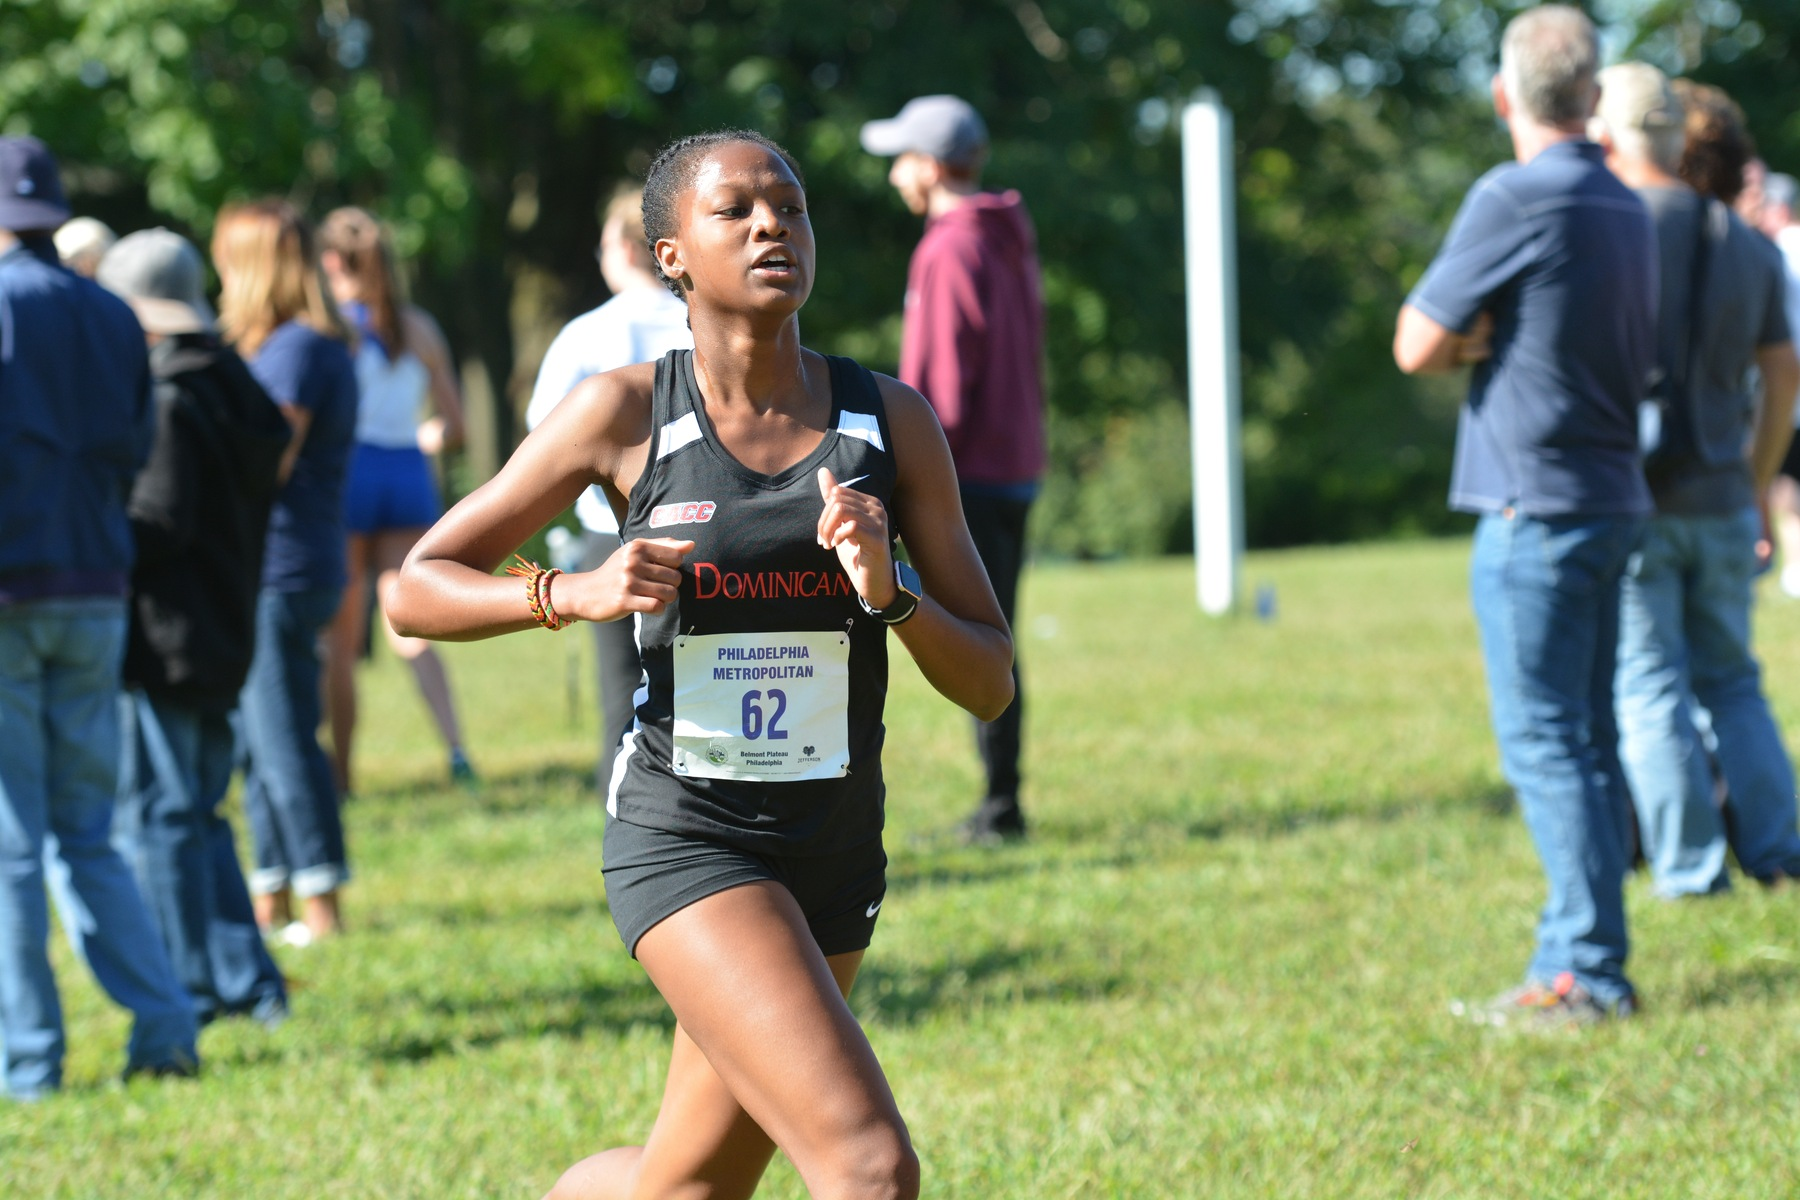 WOMEN'S CROSS COUNTRY COMPETE AT PHILLY METRO CHAMPIONSHIP